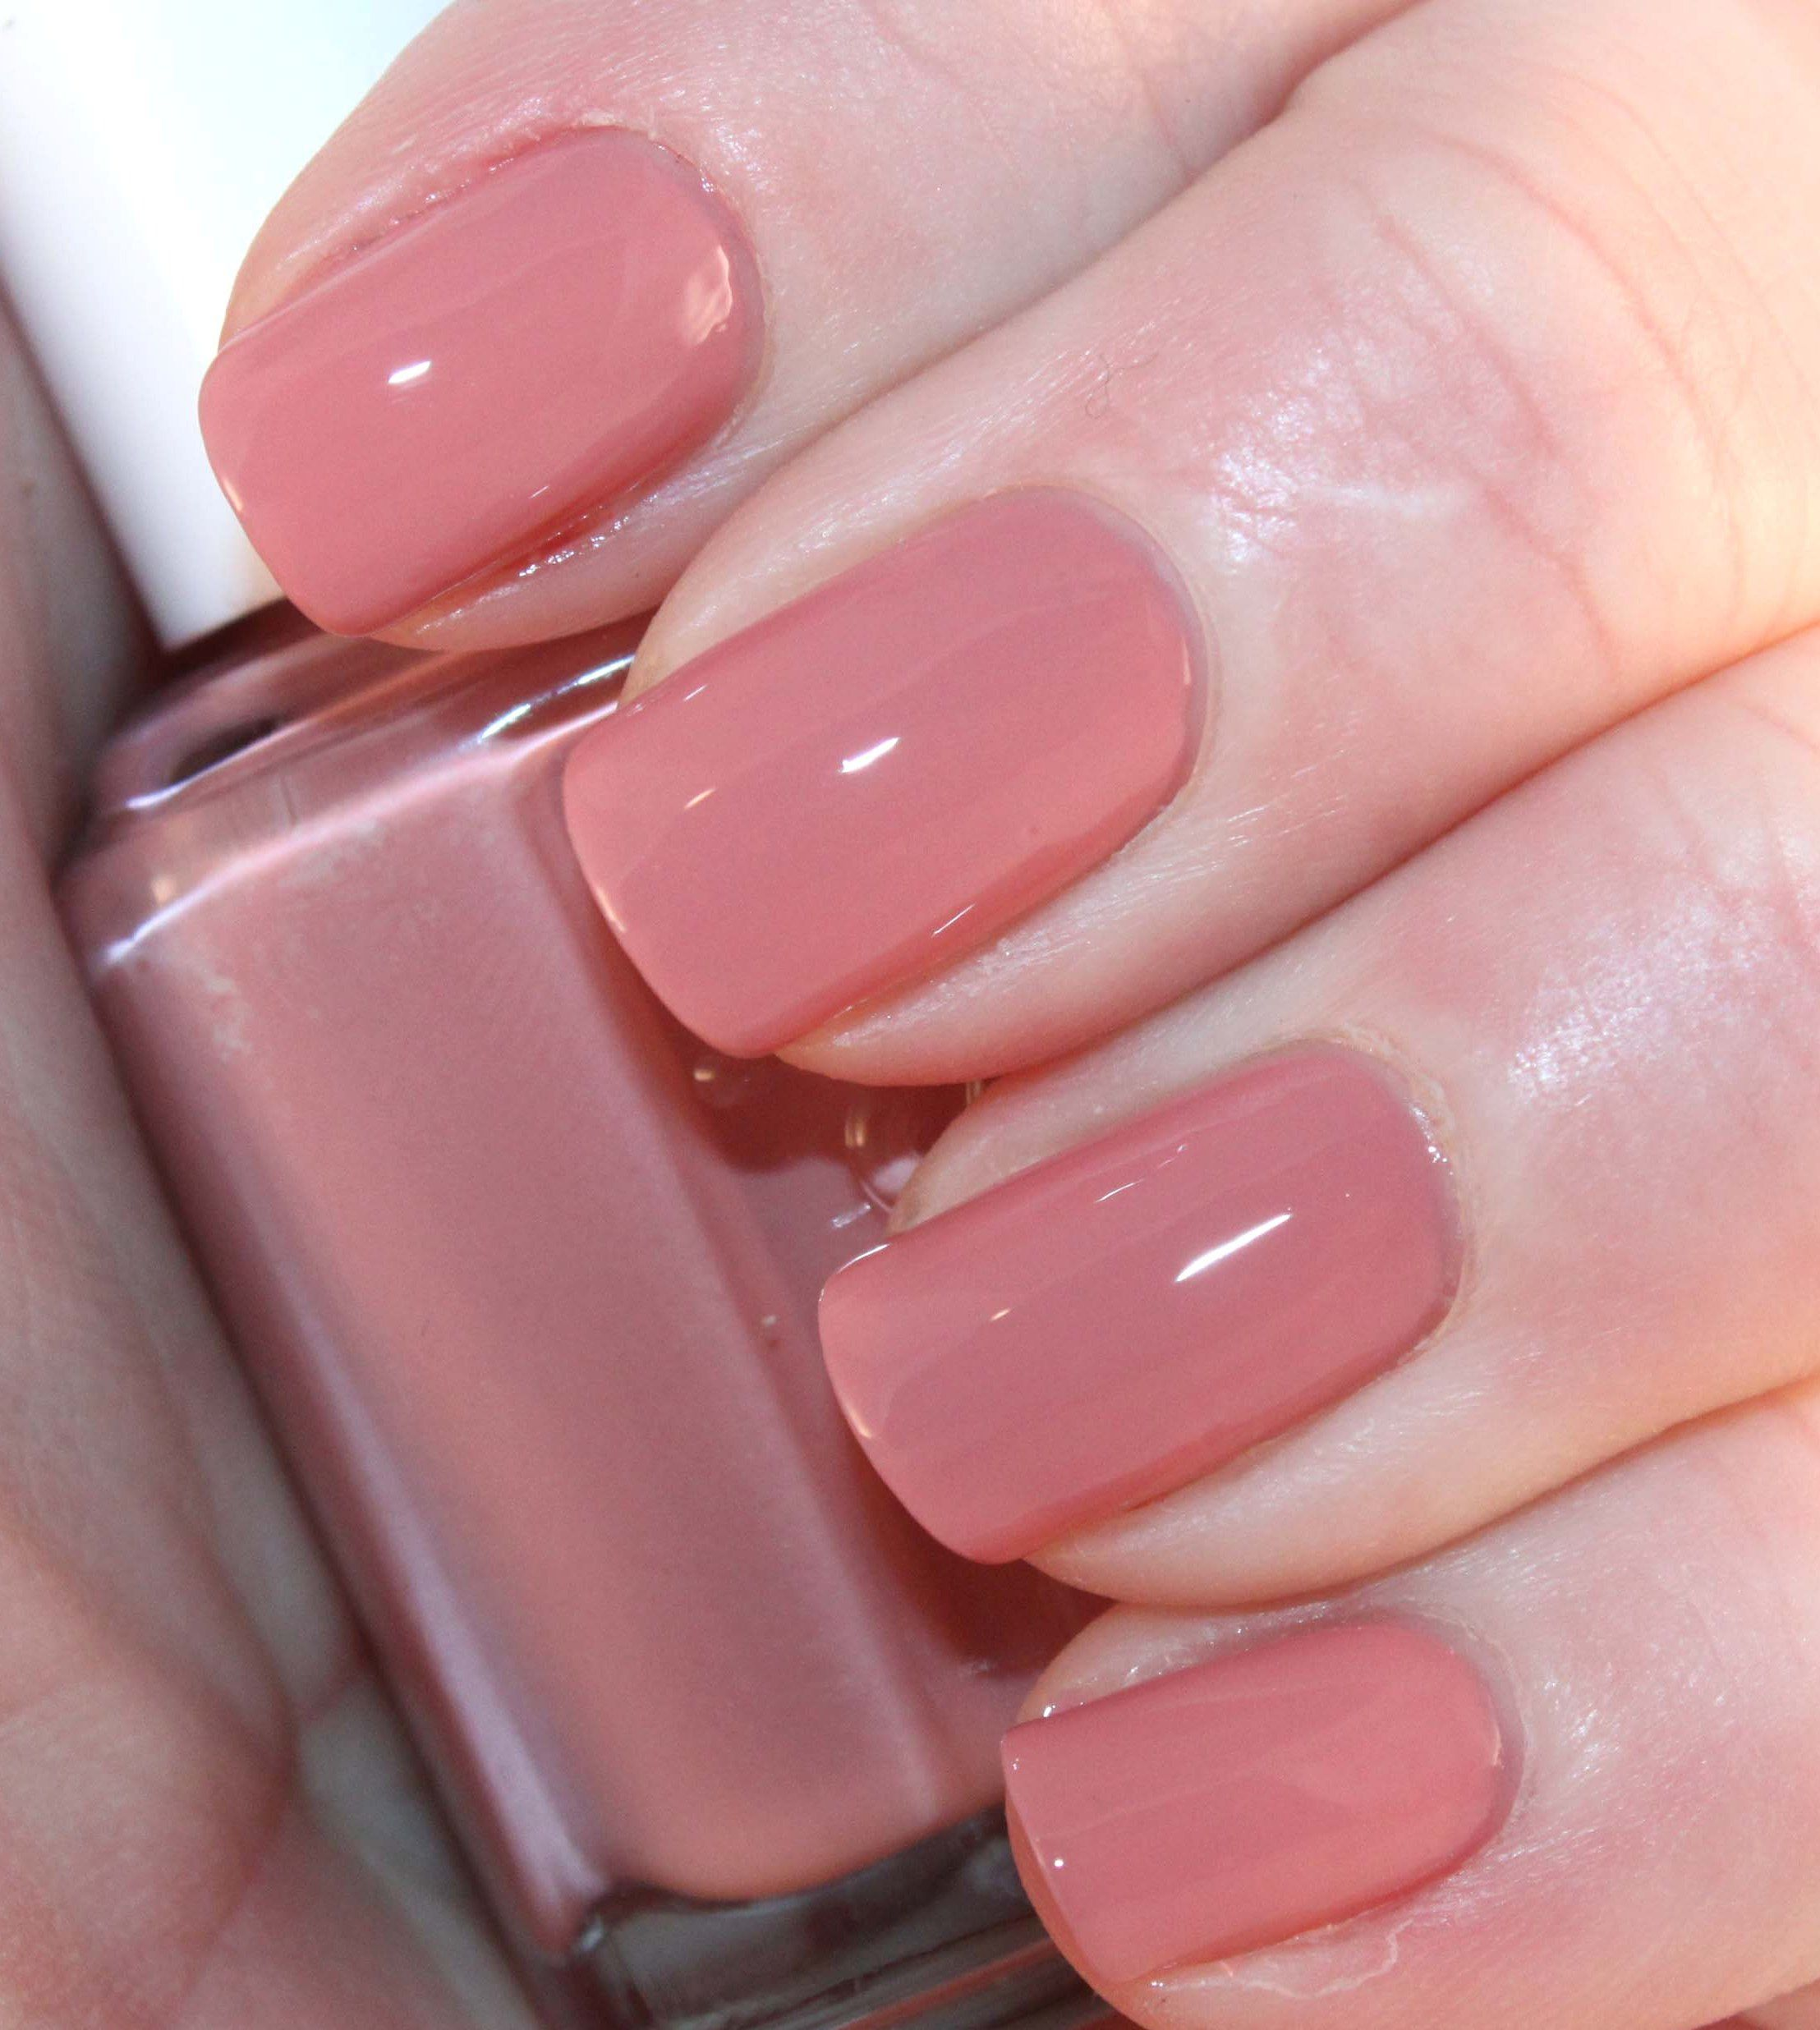 Nail Polish Colors Essie: Essie Fondola Gondola. Very Pretty Spring/summer Pick.